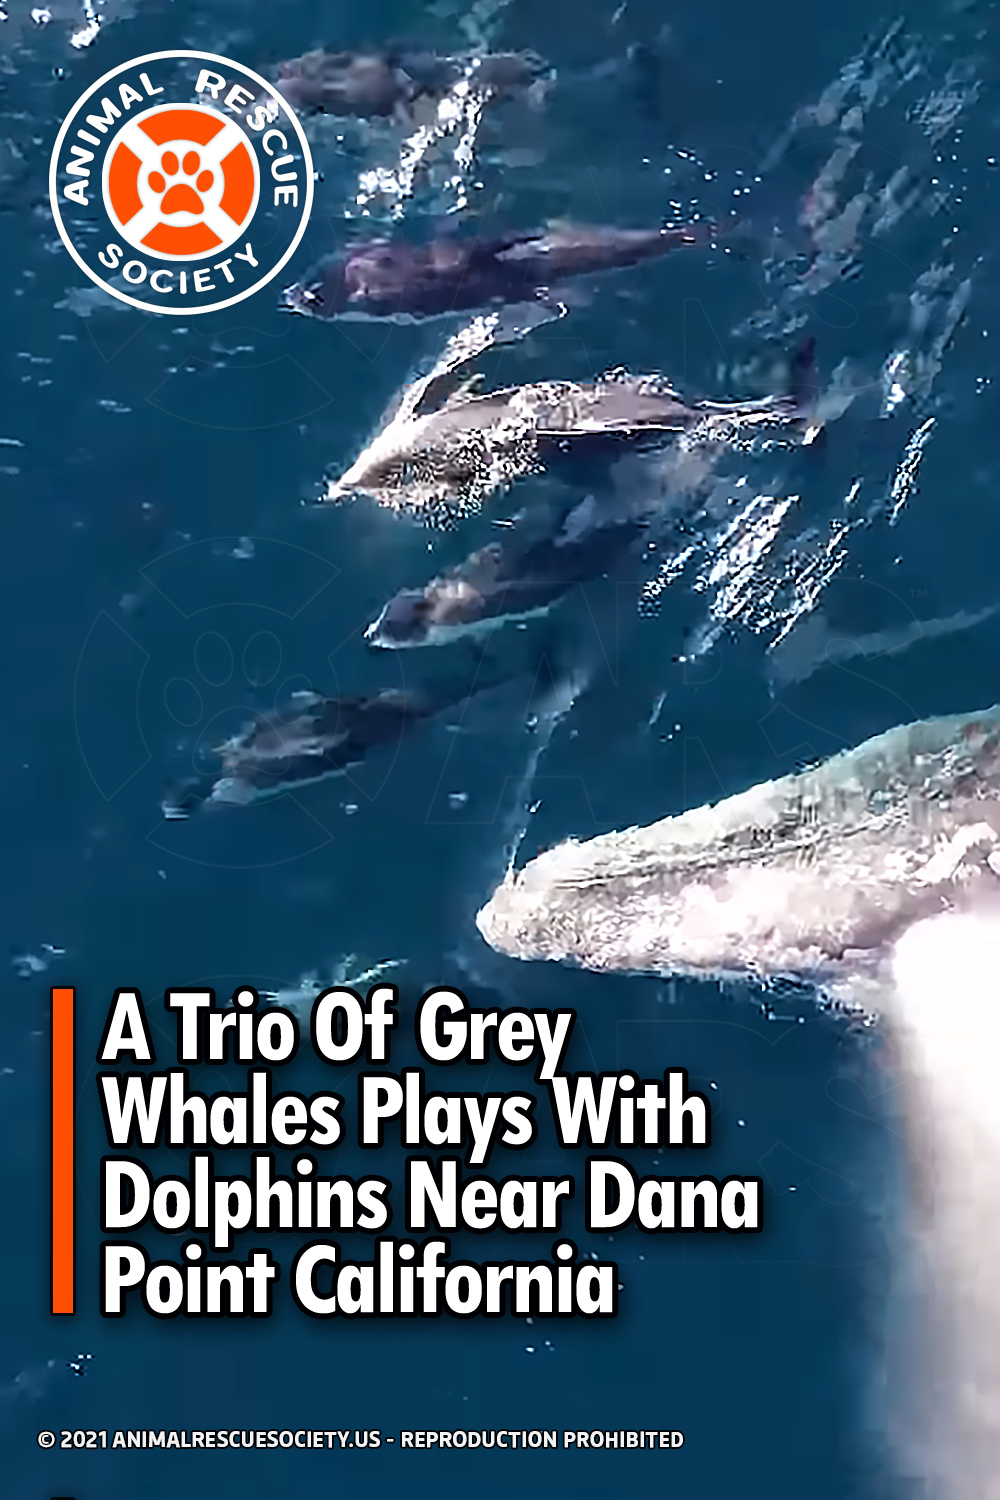 A Trio Of Grey Whales Plays With Dolphins Near Dana Point California